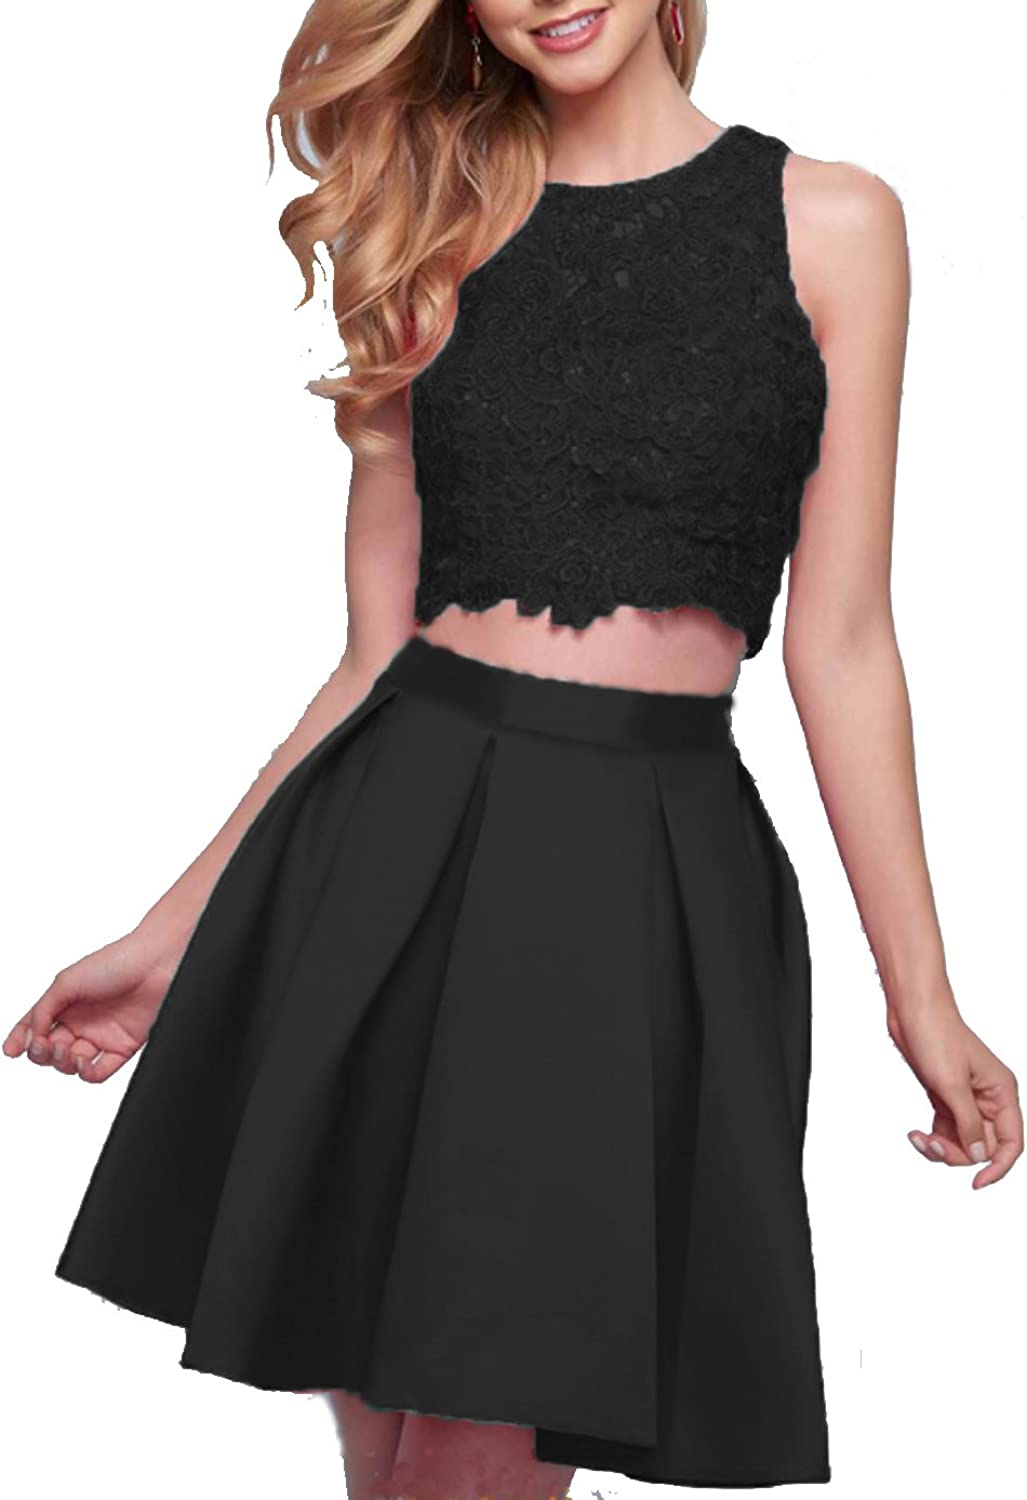 Jingliz Two Pieces Homecoming Dress Lace Appliques Beading Aline Short Cocktail Prom Dress